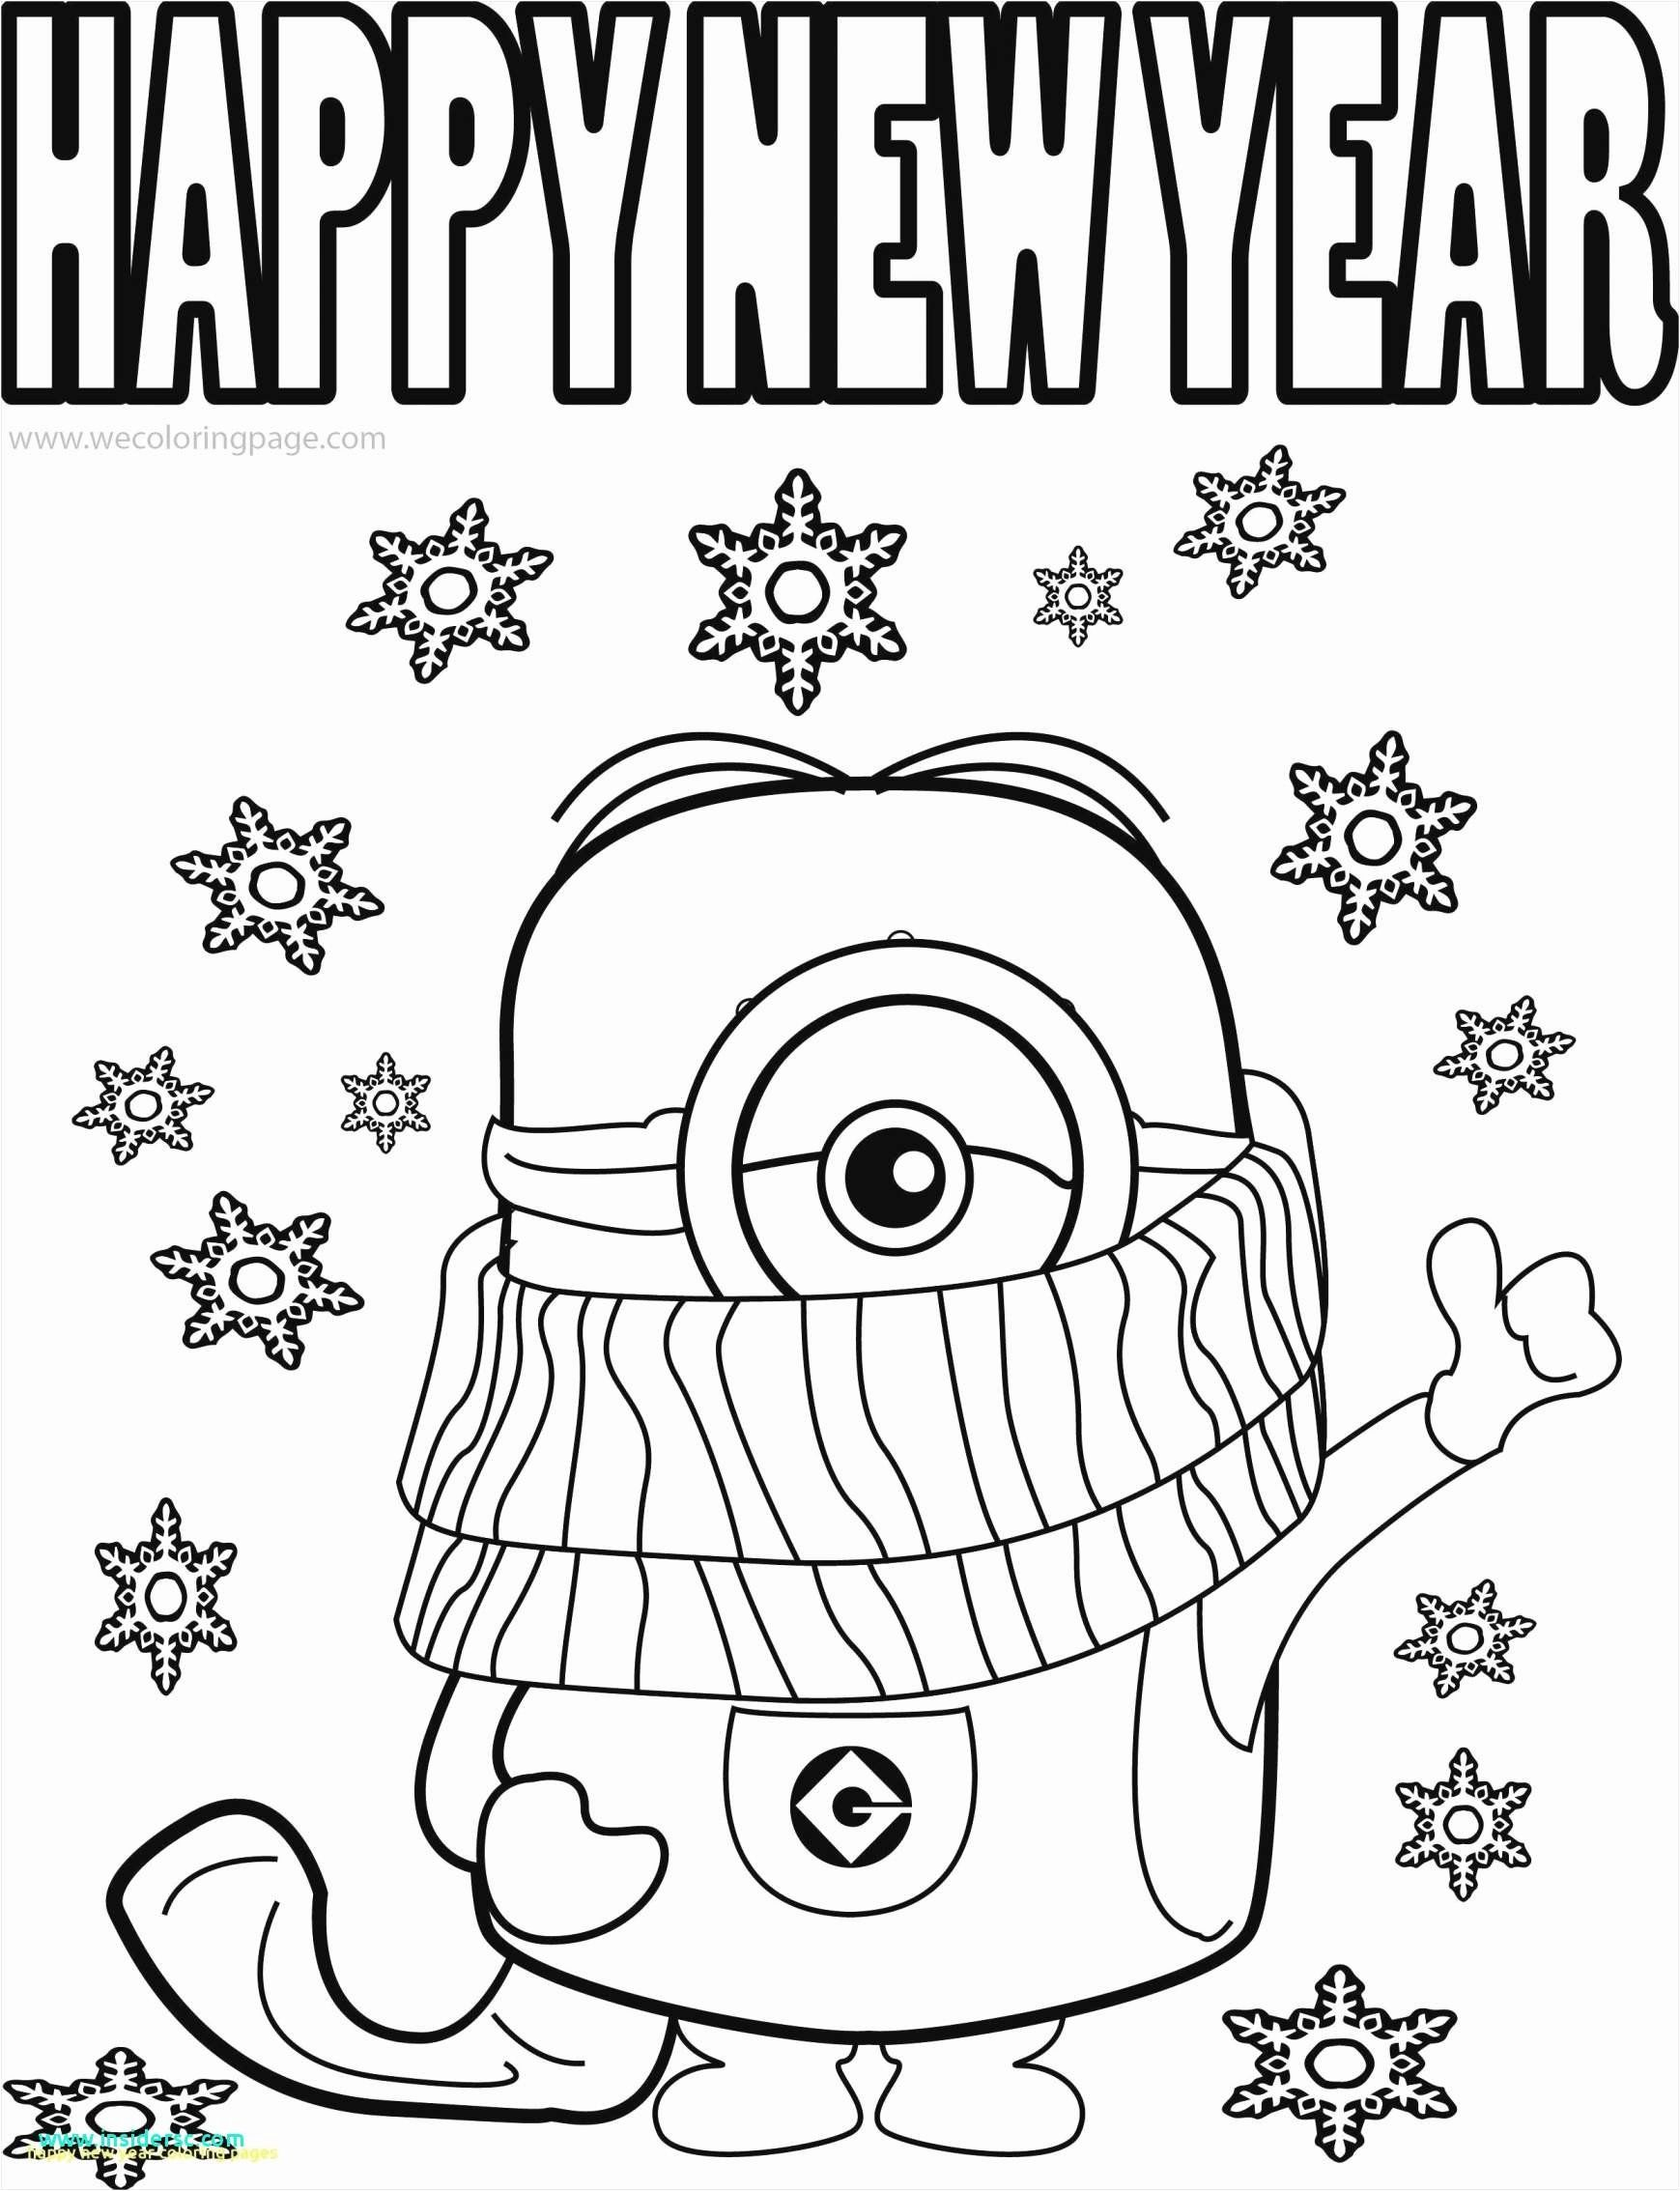 Coloring Pages Of Fruits With Faces Awesome Elegant Gingerbread Girl And Boy Coloring Shee New Year Coloring Pages Rudolph Coloring Pages Minion Coloring Pages